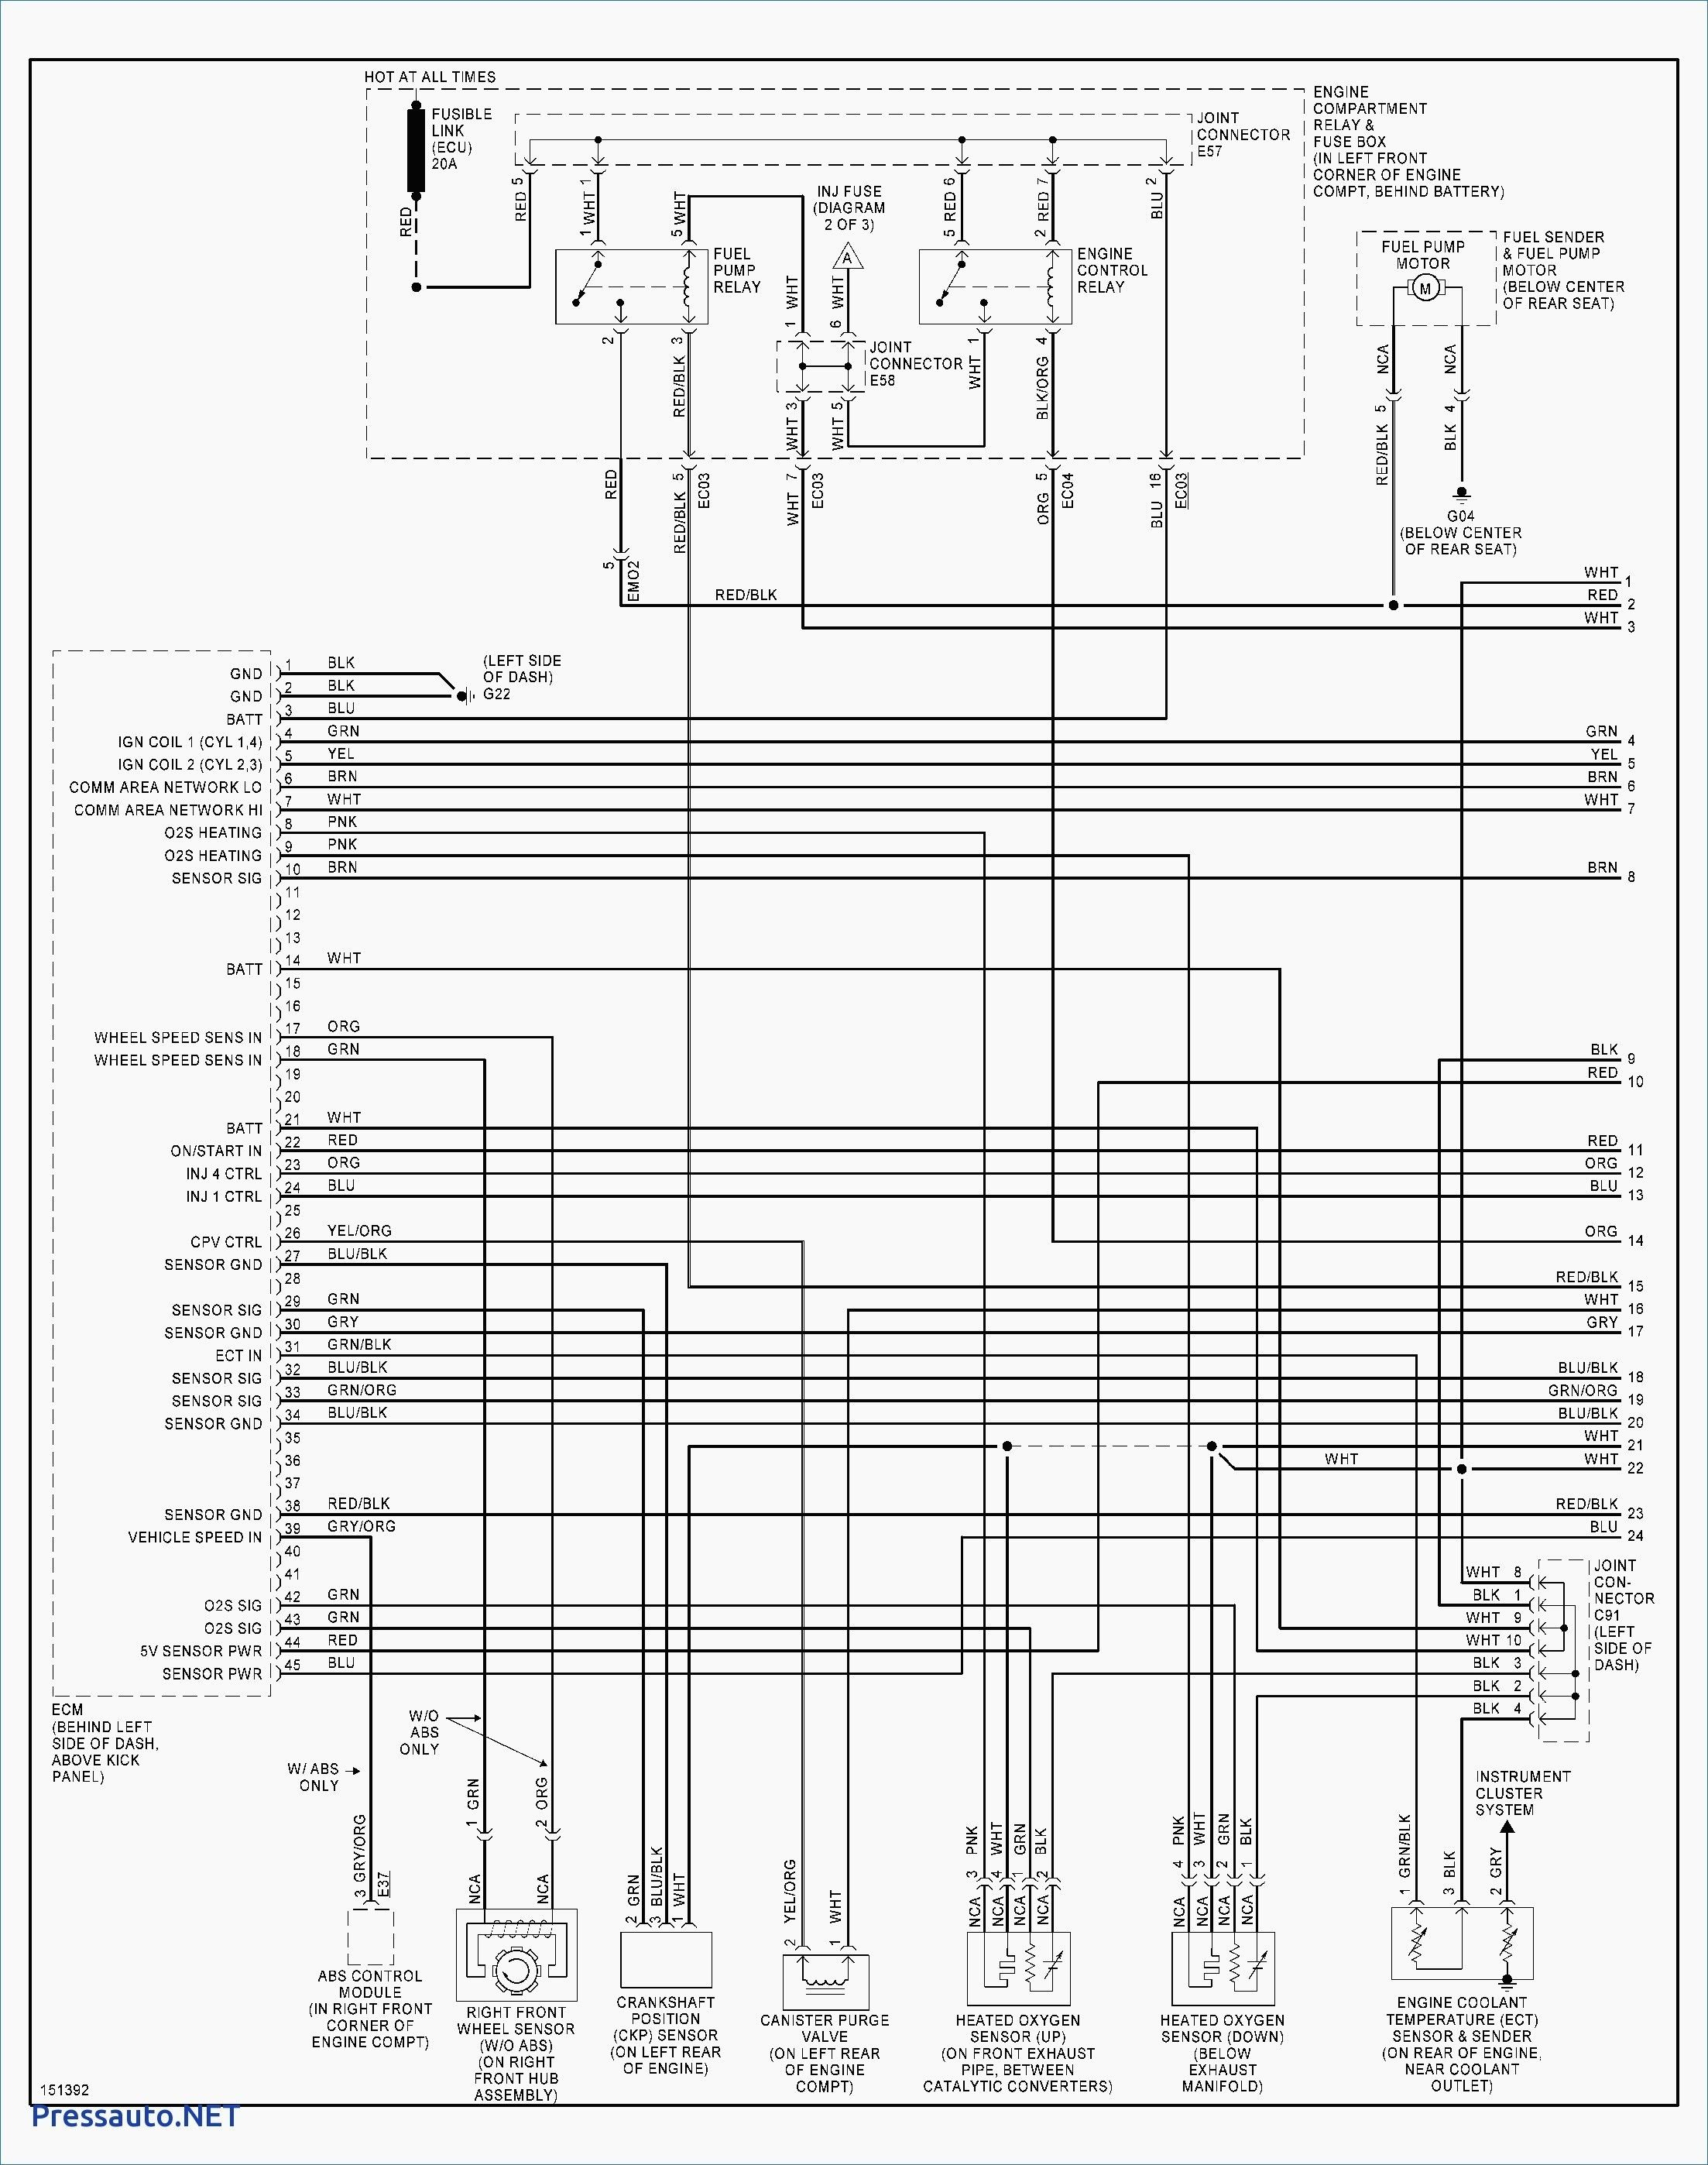 [ZTBE_9966]  Ford Fuel Pump Relay Wiring Diagram - bookingritzcarlton.info | Electrical wiring  diagram, Electrical diagram, Hyundai elantra | Delphi Fuel Pump Wiring Diagram |  | Pinterest